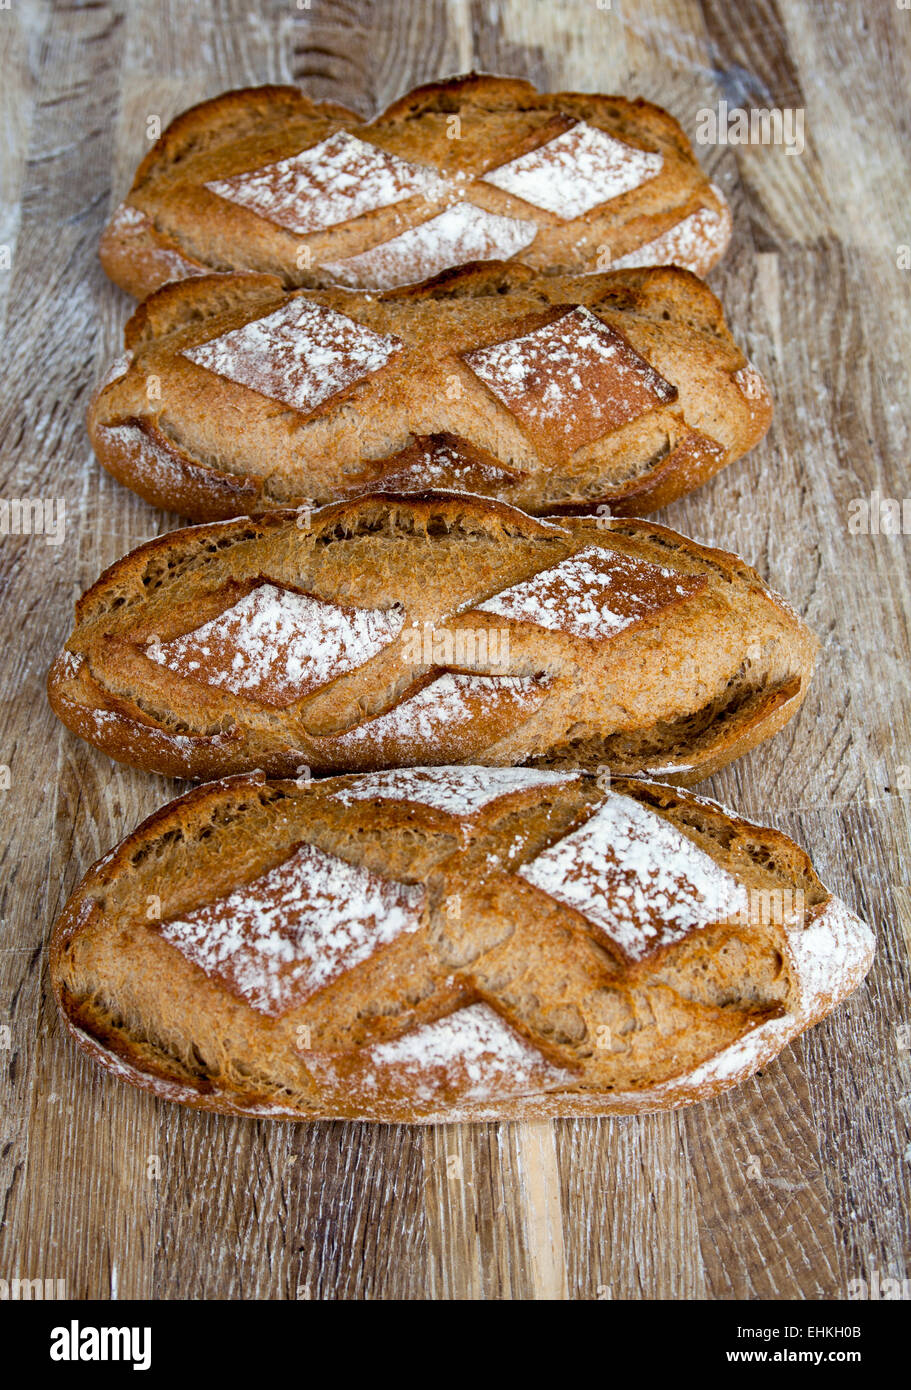 Loaves of Freshly Baked Sourdough Bread - Stock Image